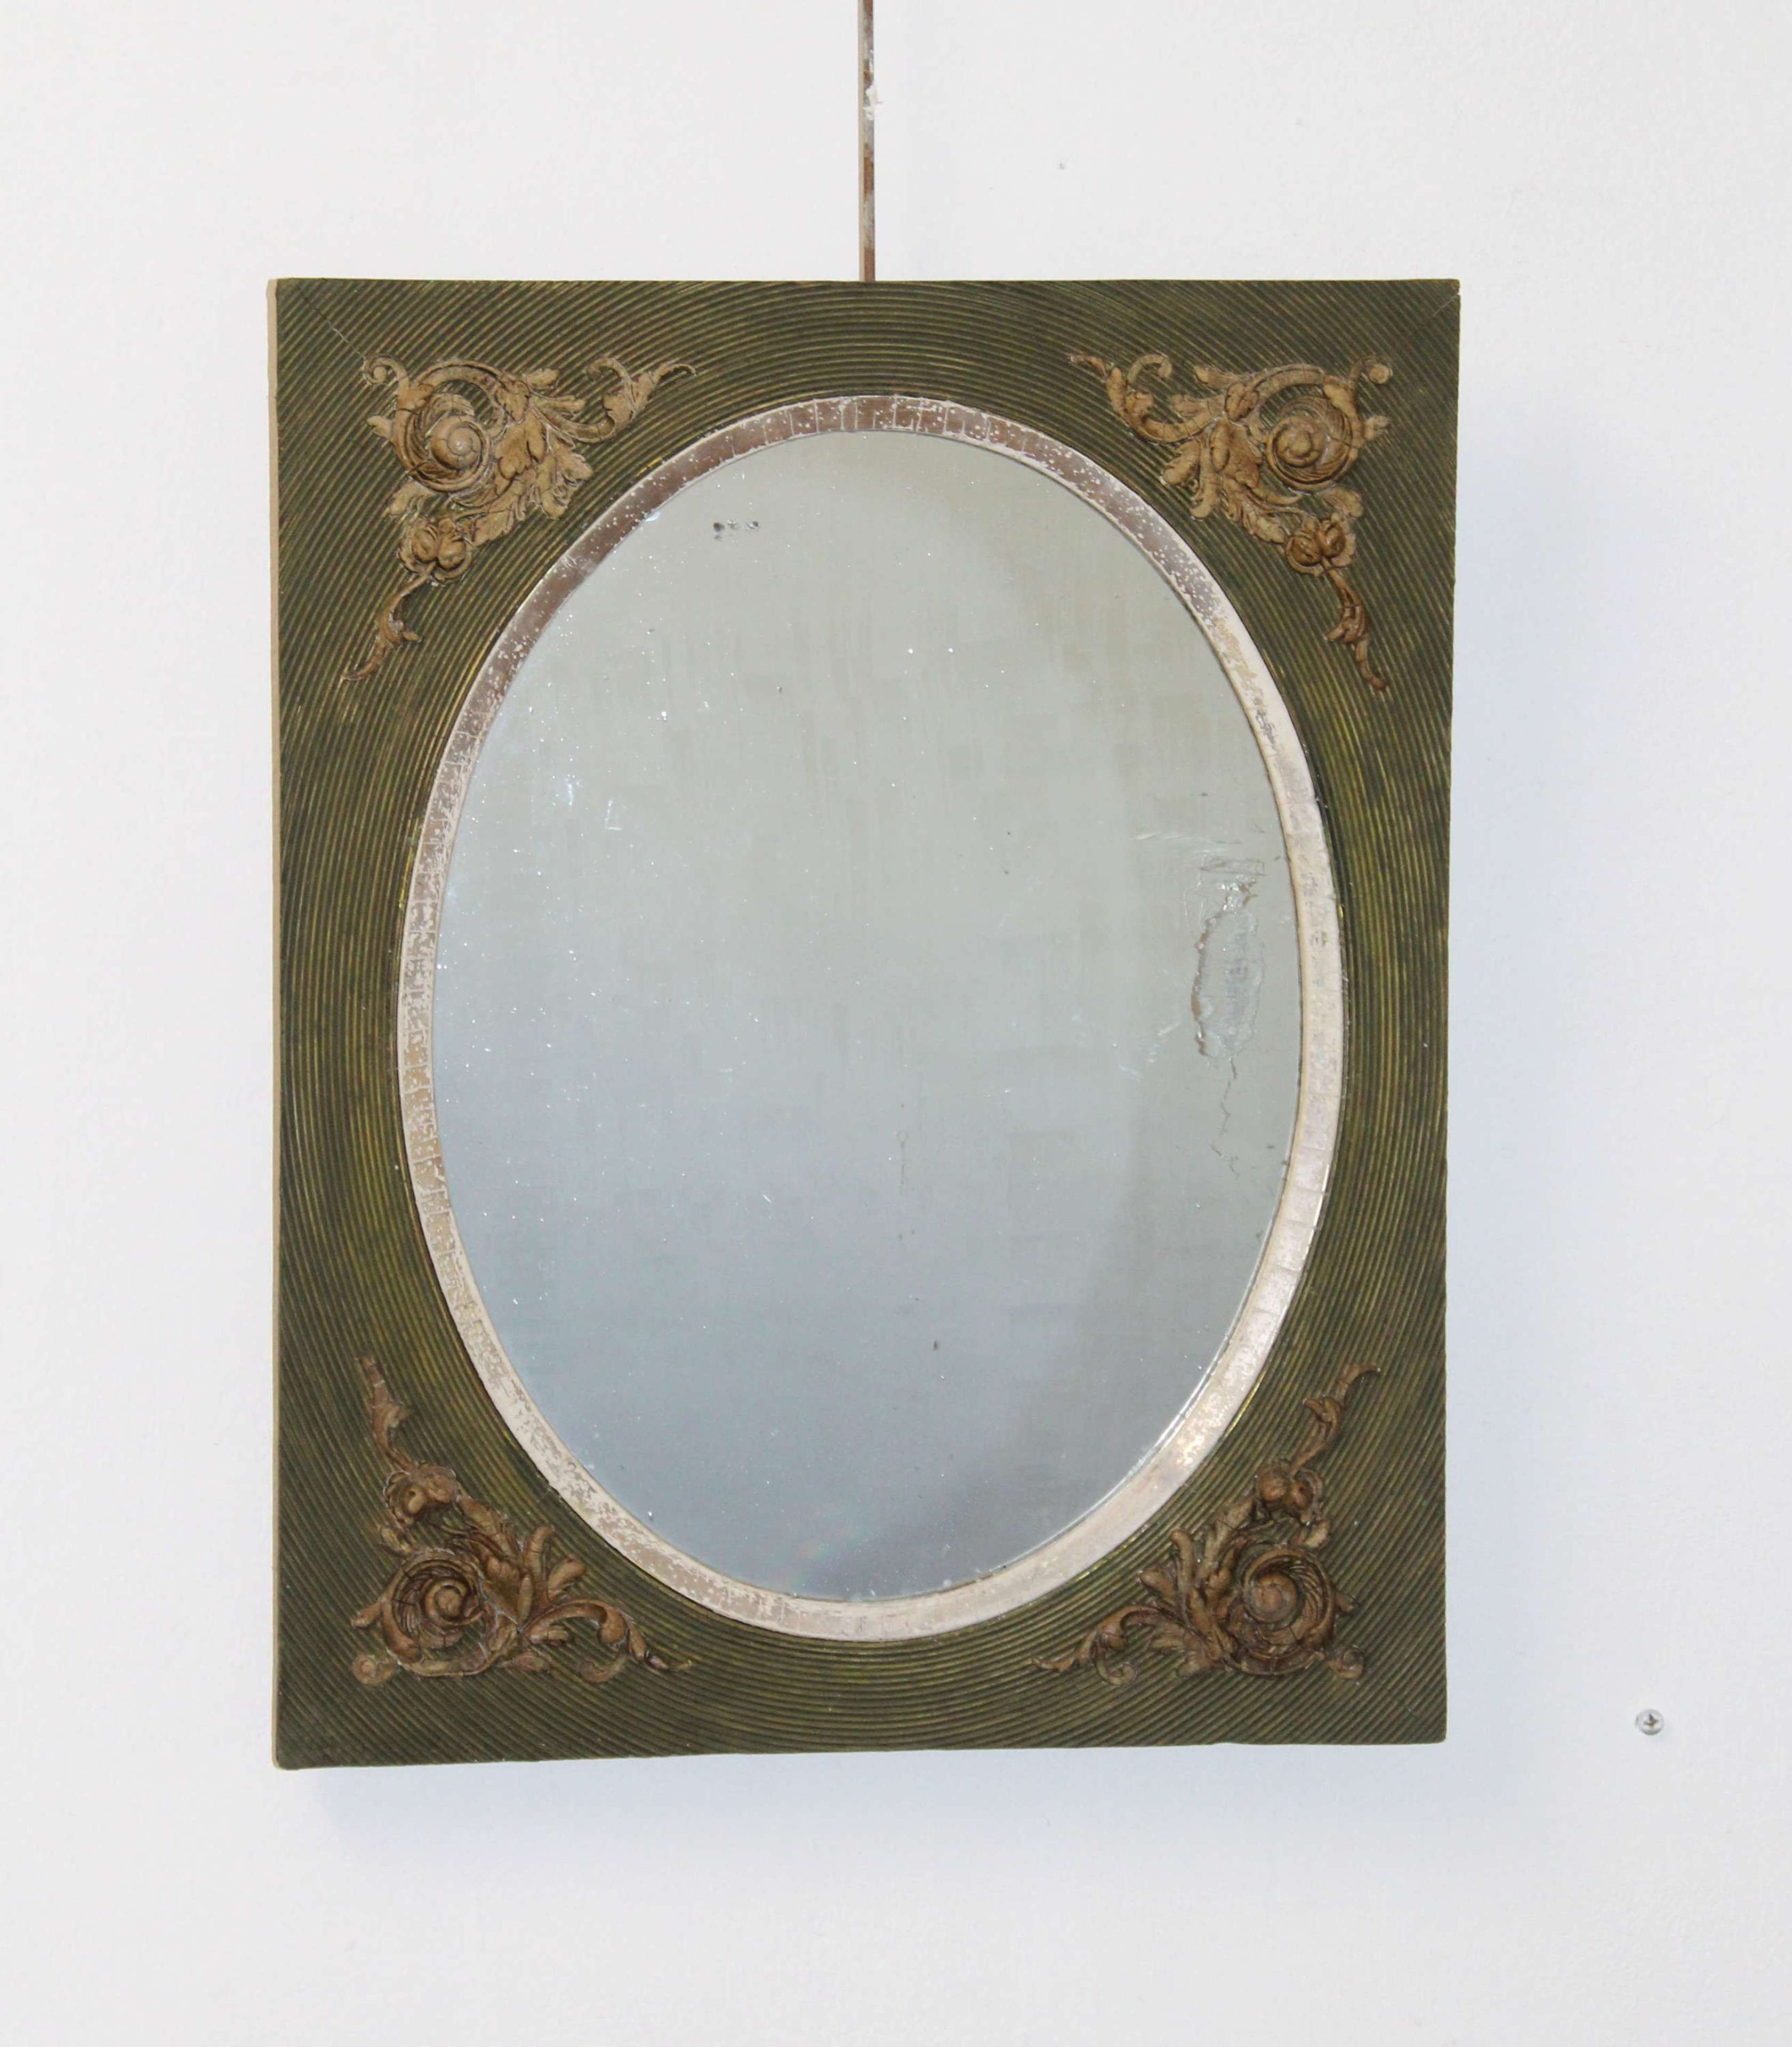 Small antique mirror with green frame and oval glass